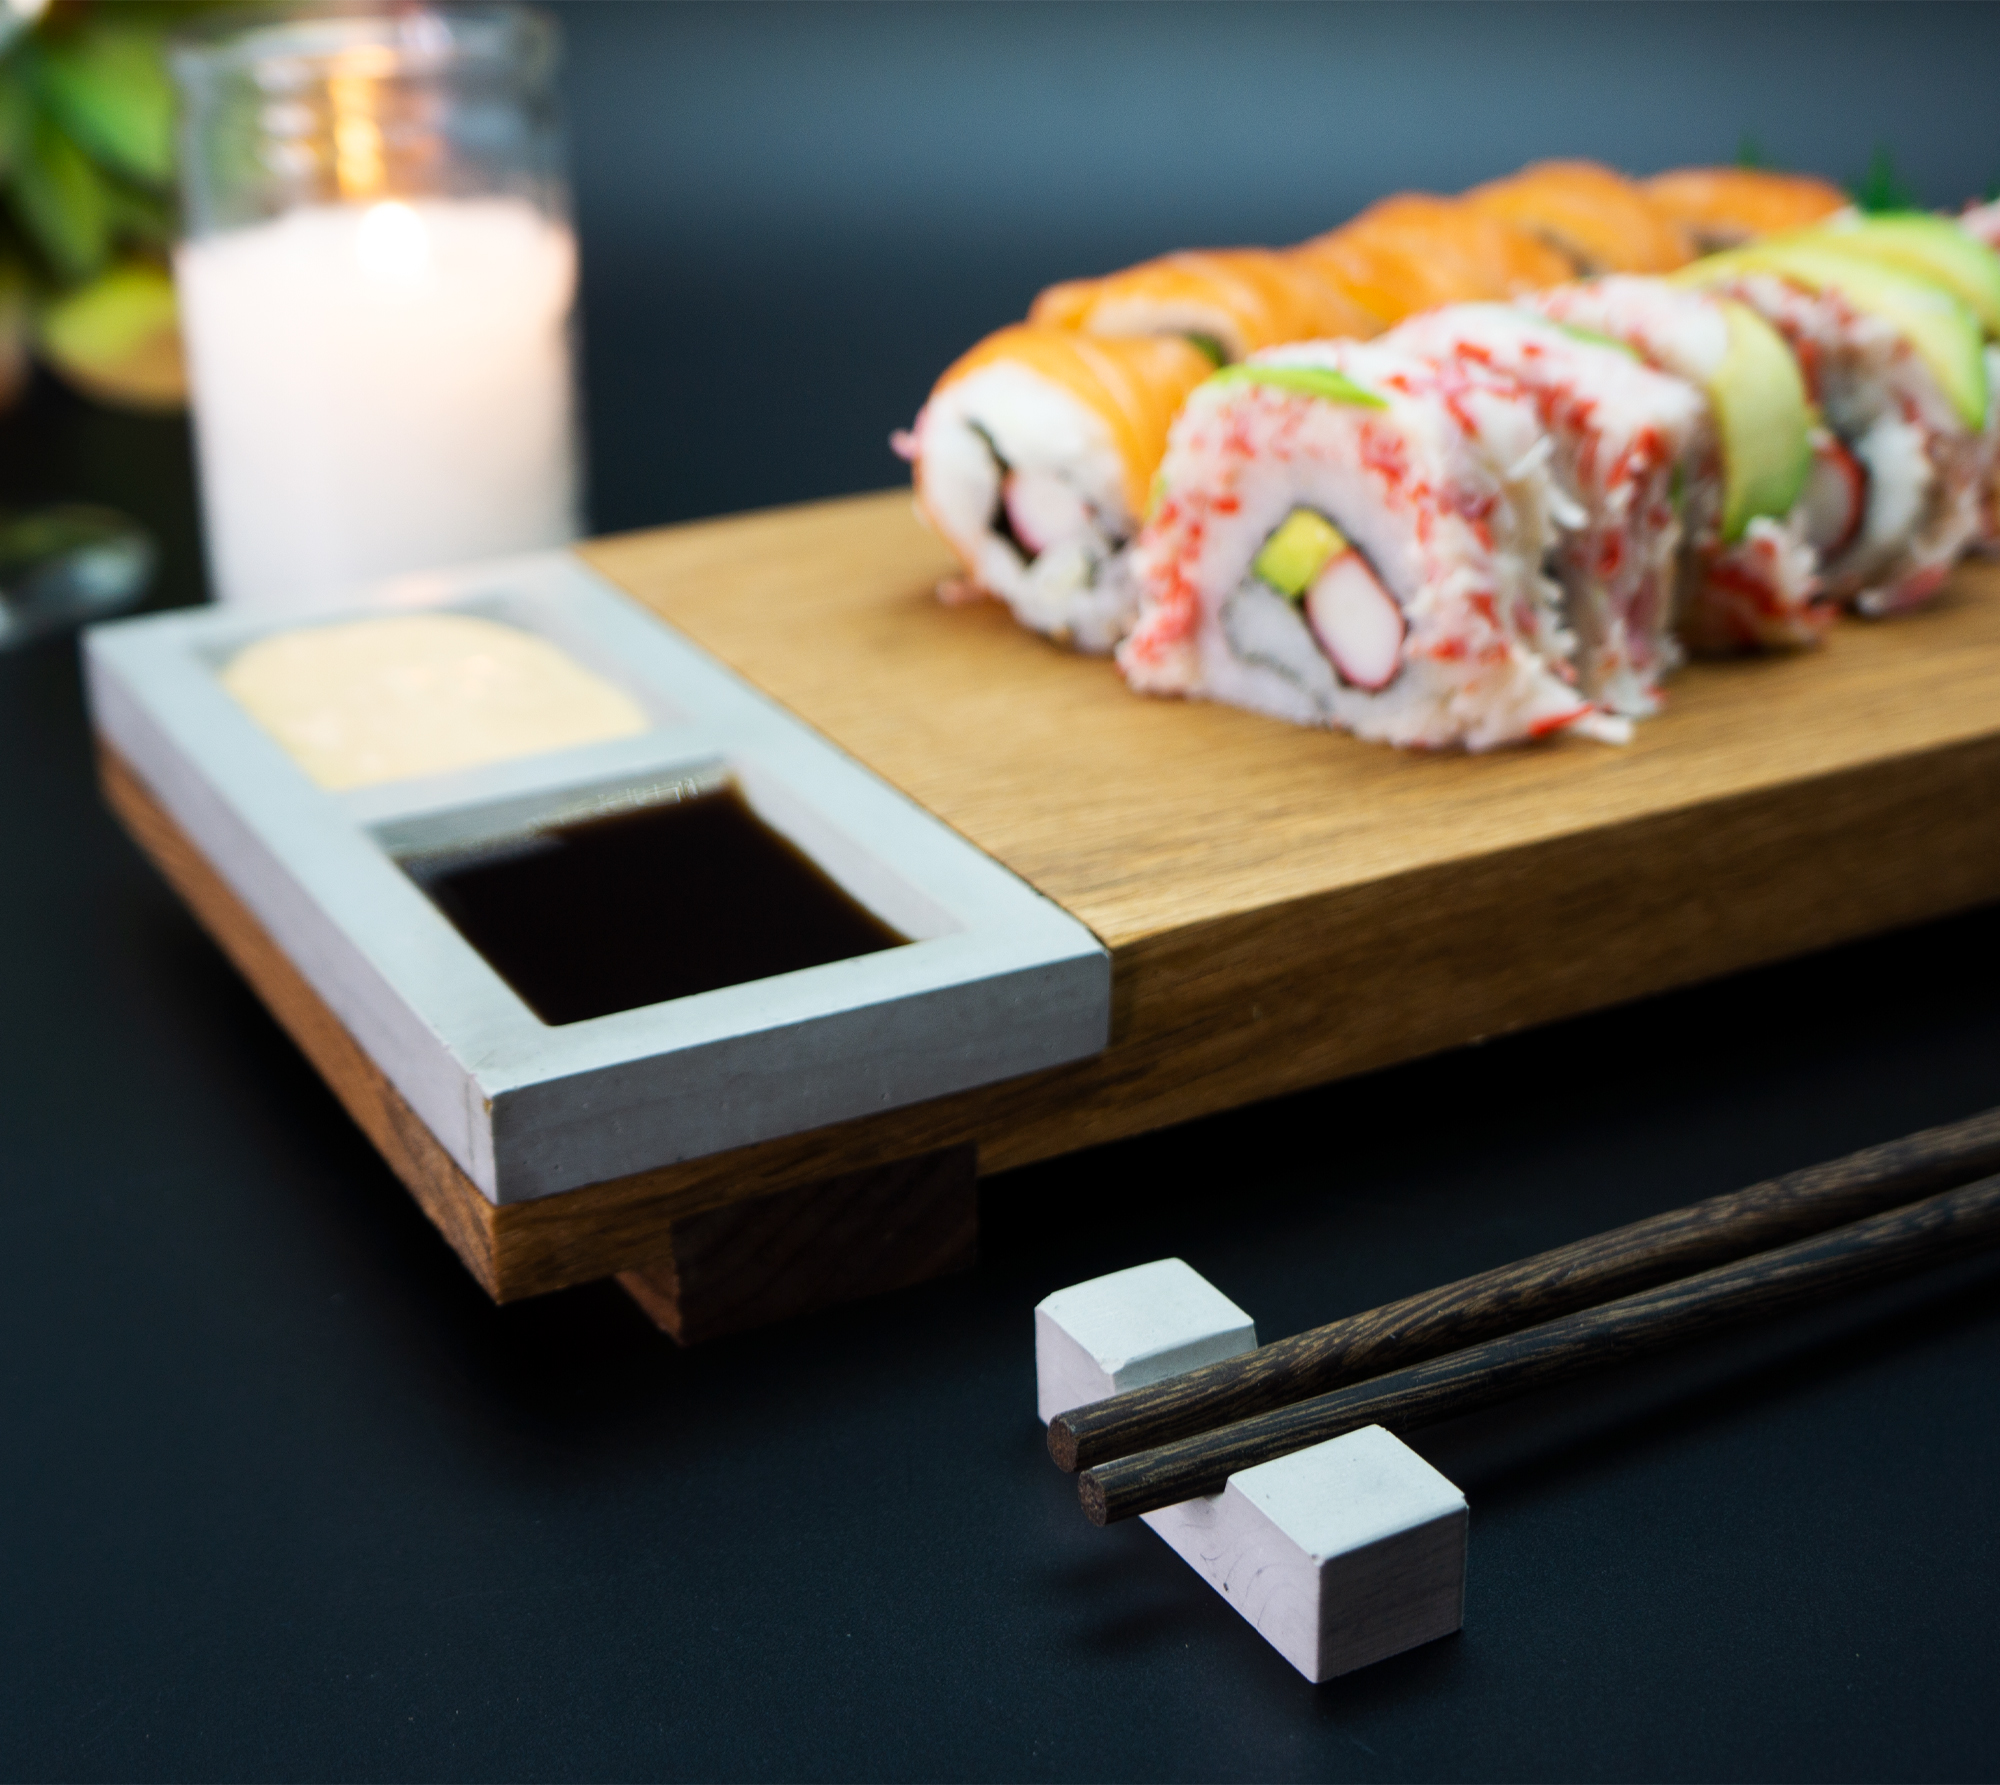 sushi board with concrete sauce tray holding spicy mayo and soy sauce